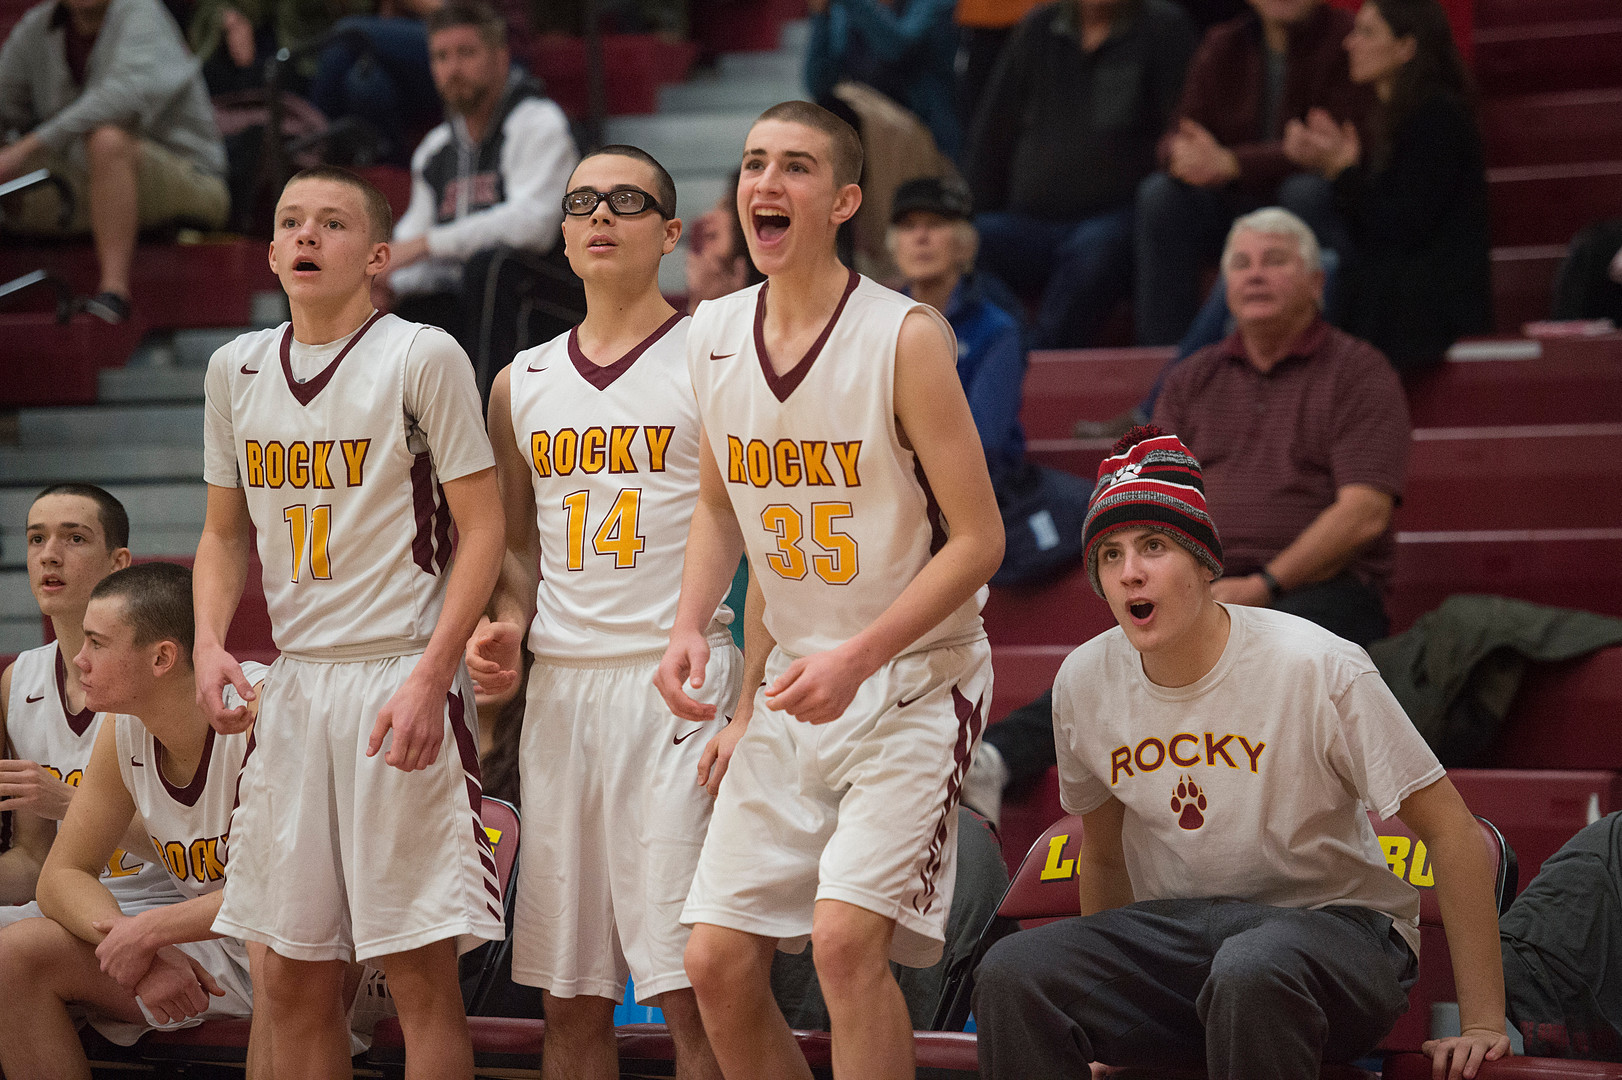 Carter Edgerley cheers for his teammates on the Rocky Mountain High School basketball team from the bench after a Lobos play in a game against Greeley West on Tuesday, January 8, 2019. The Lobos lost the game to Spartans 63-53. AUSTIN HUMPHREYS/THE COLORADOAN